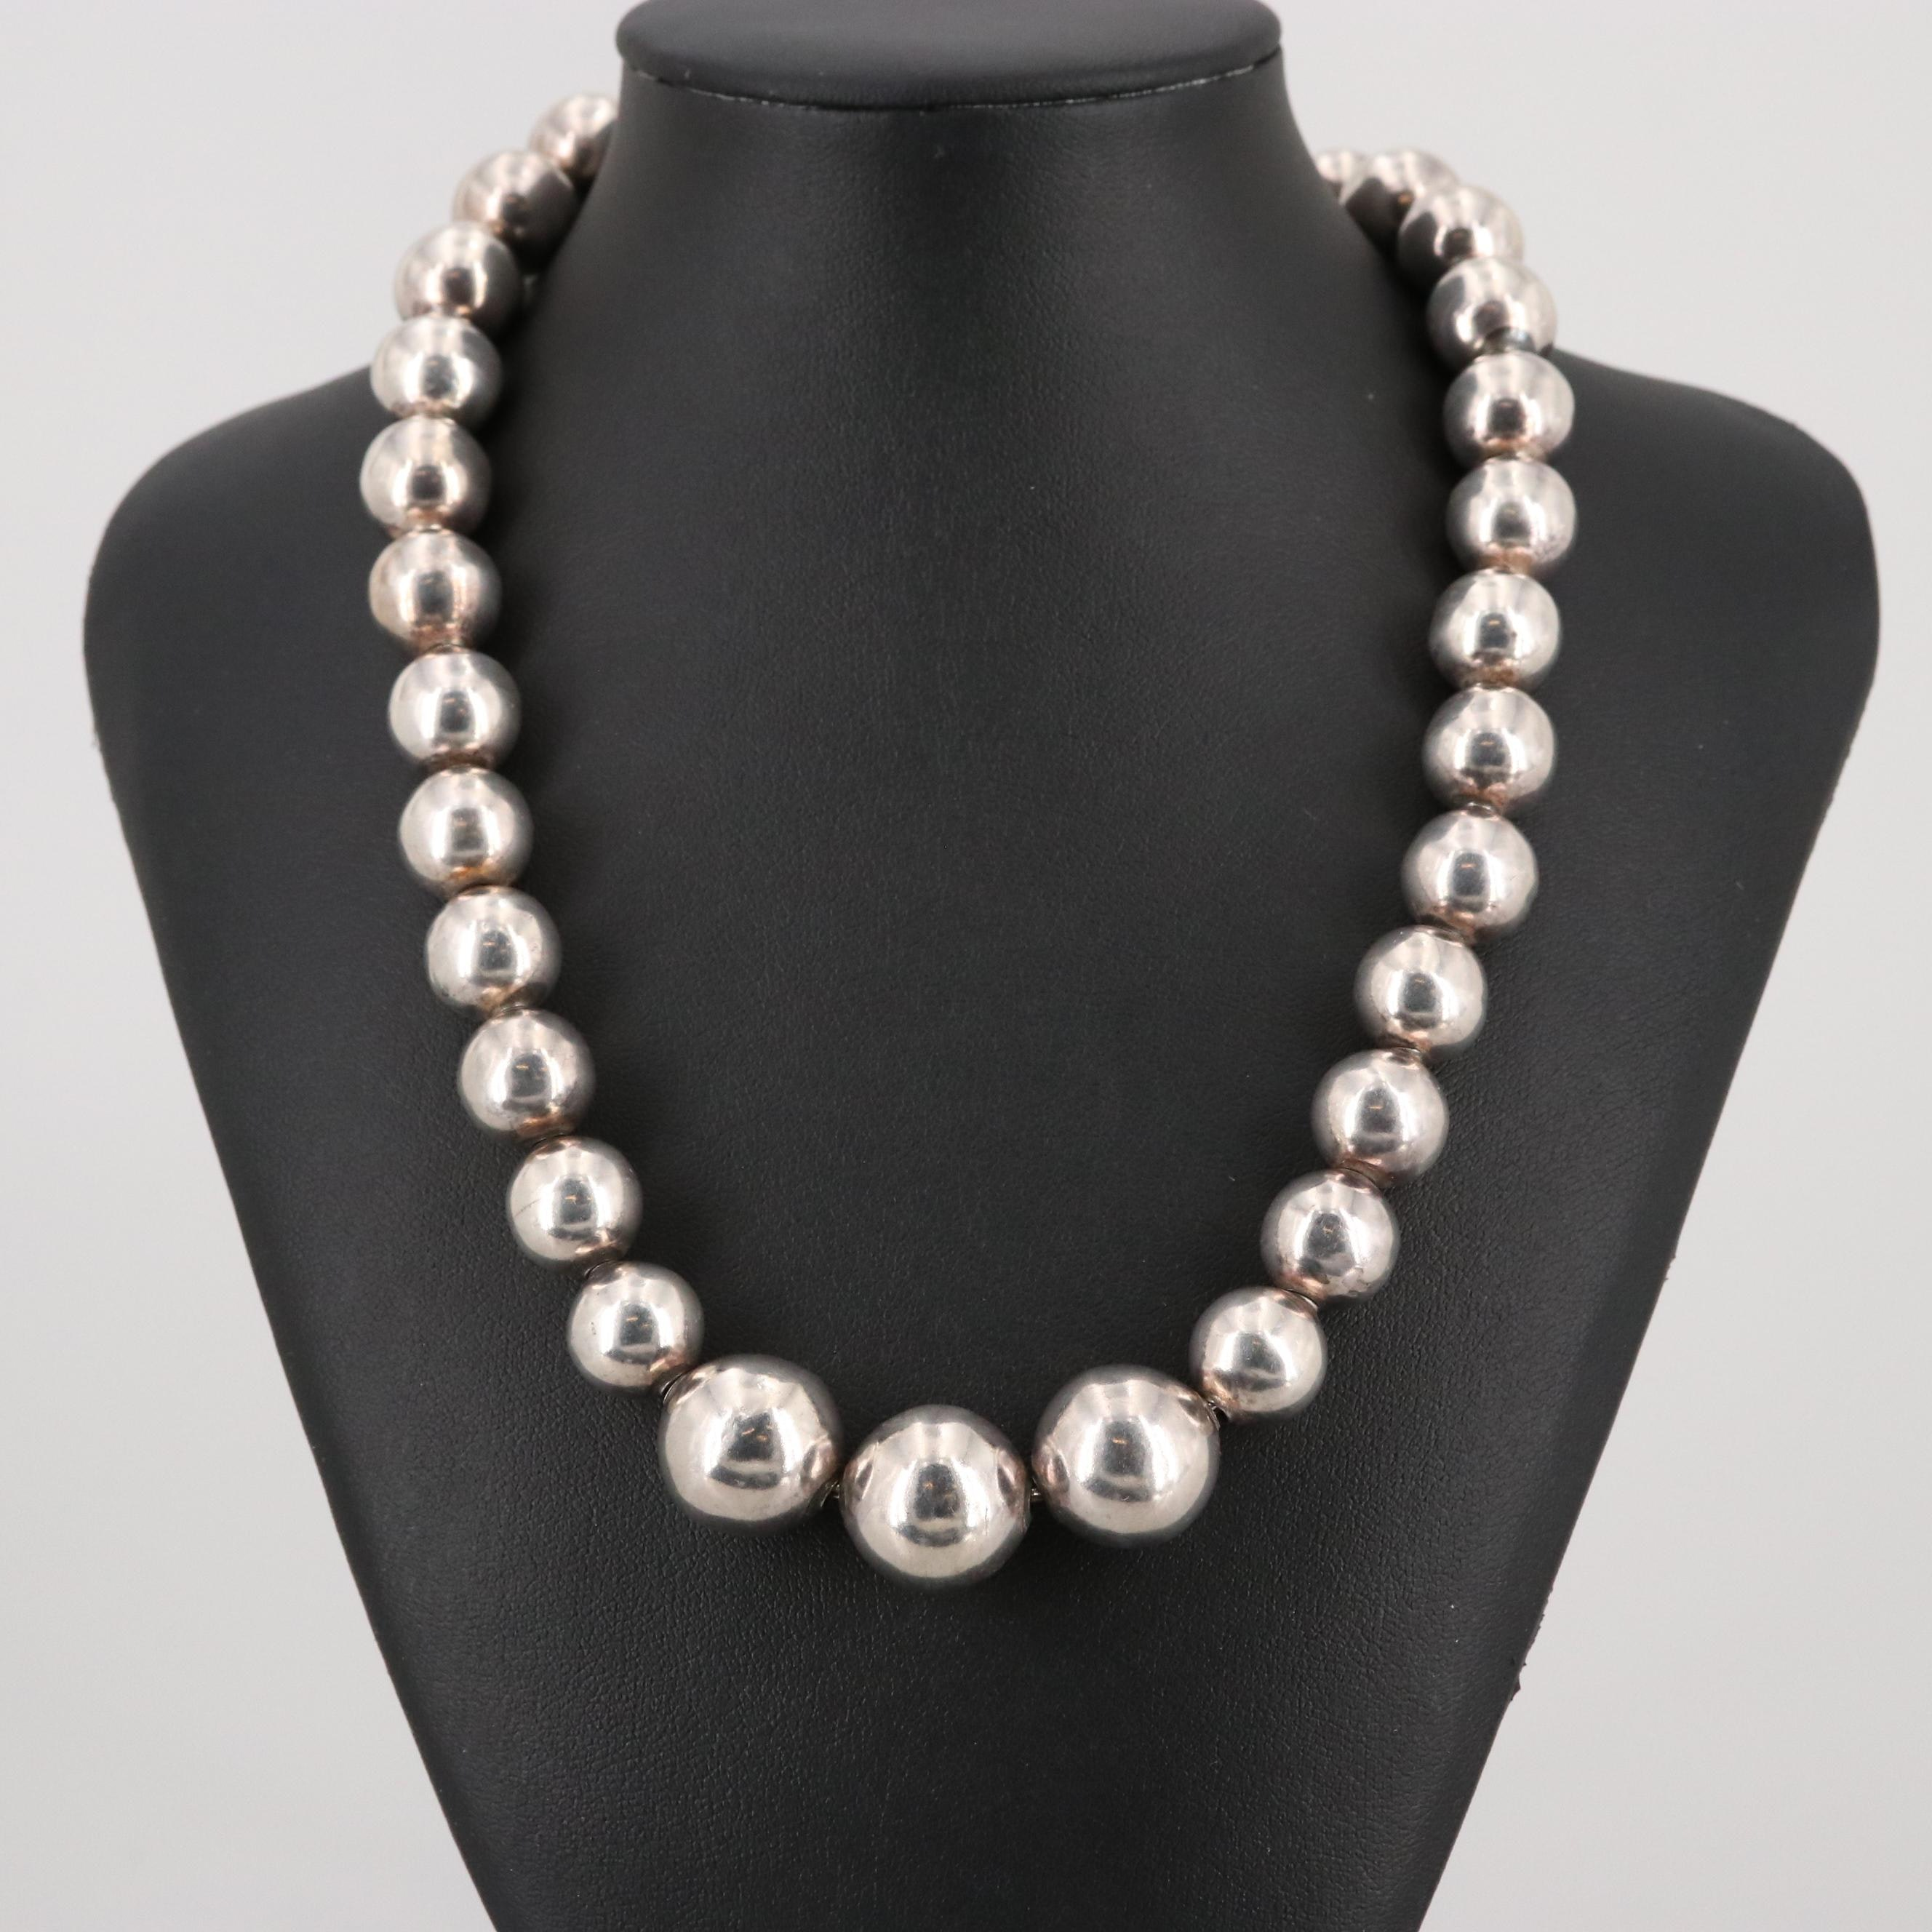 Taxco Mexico Sterling Silver Graduated Bead Necklace